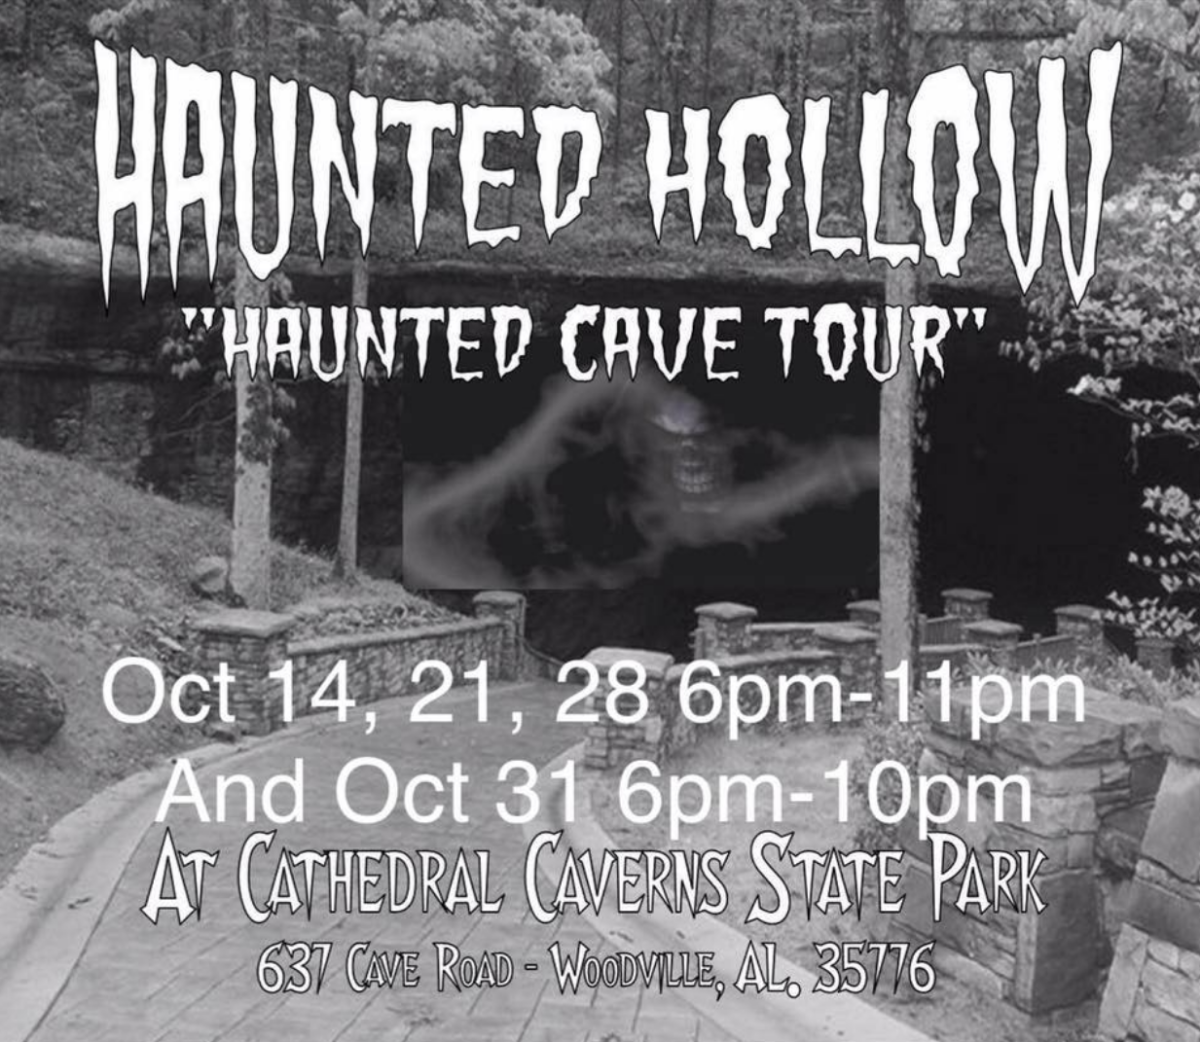 Haunted Cave Tours at Cathedral Caverns State Park